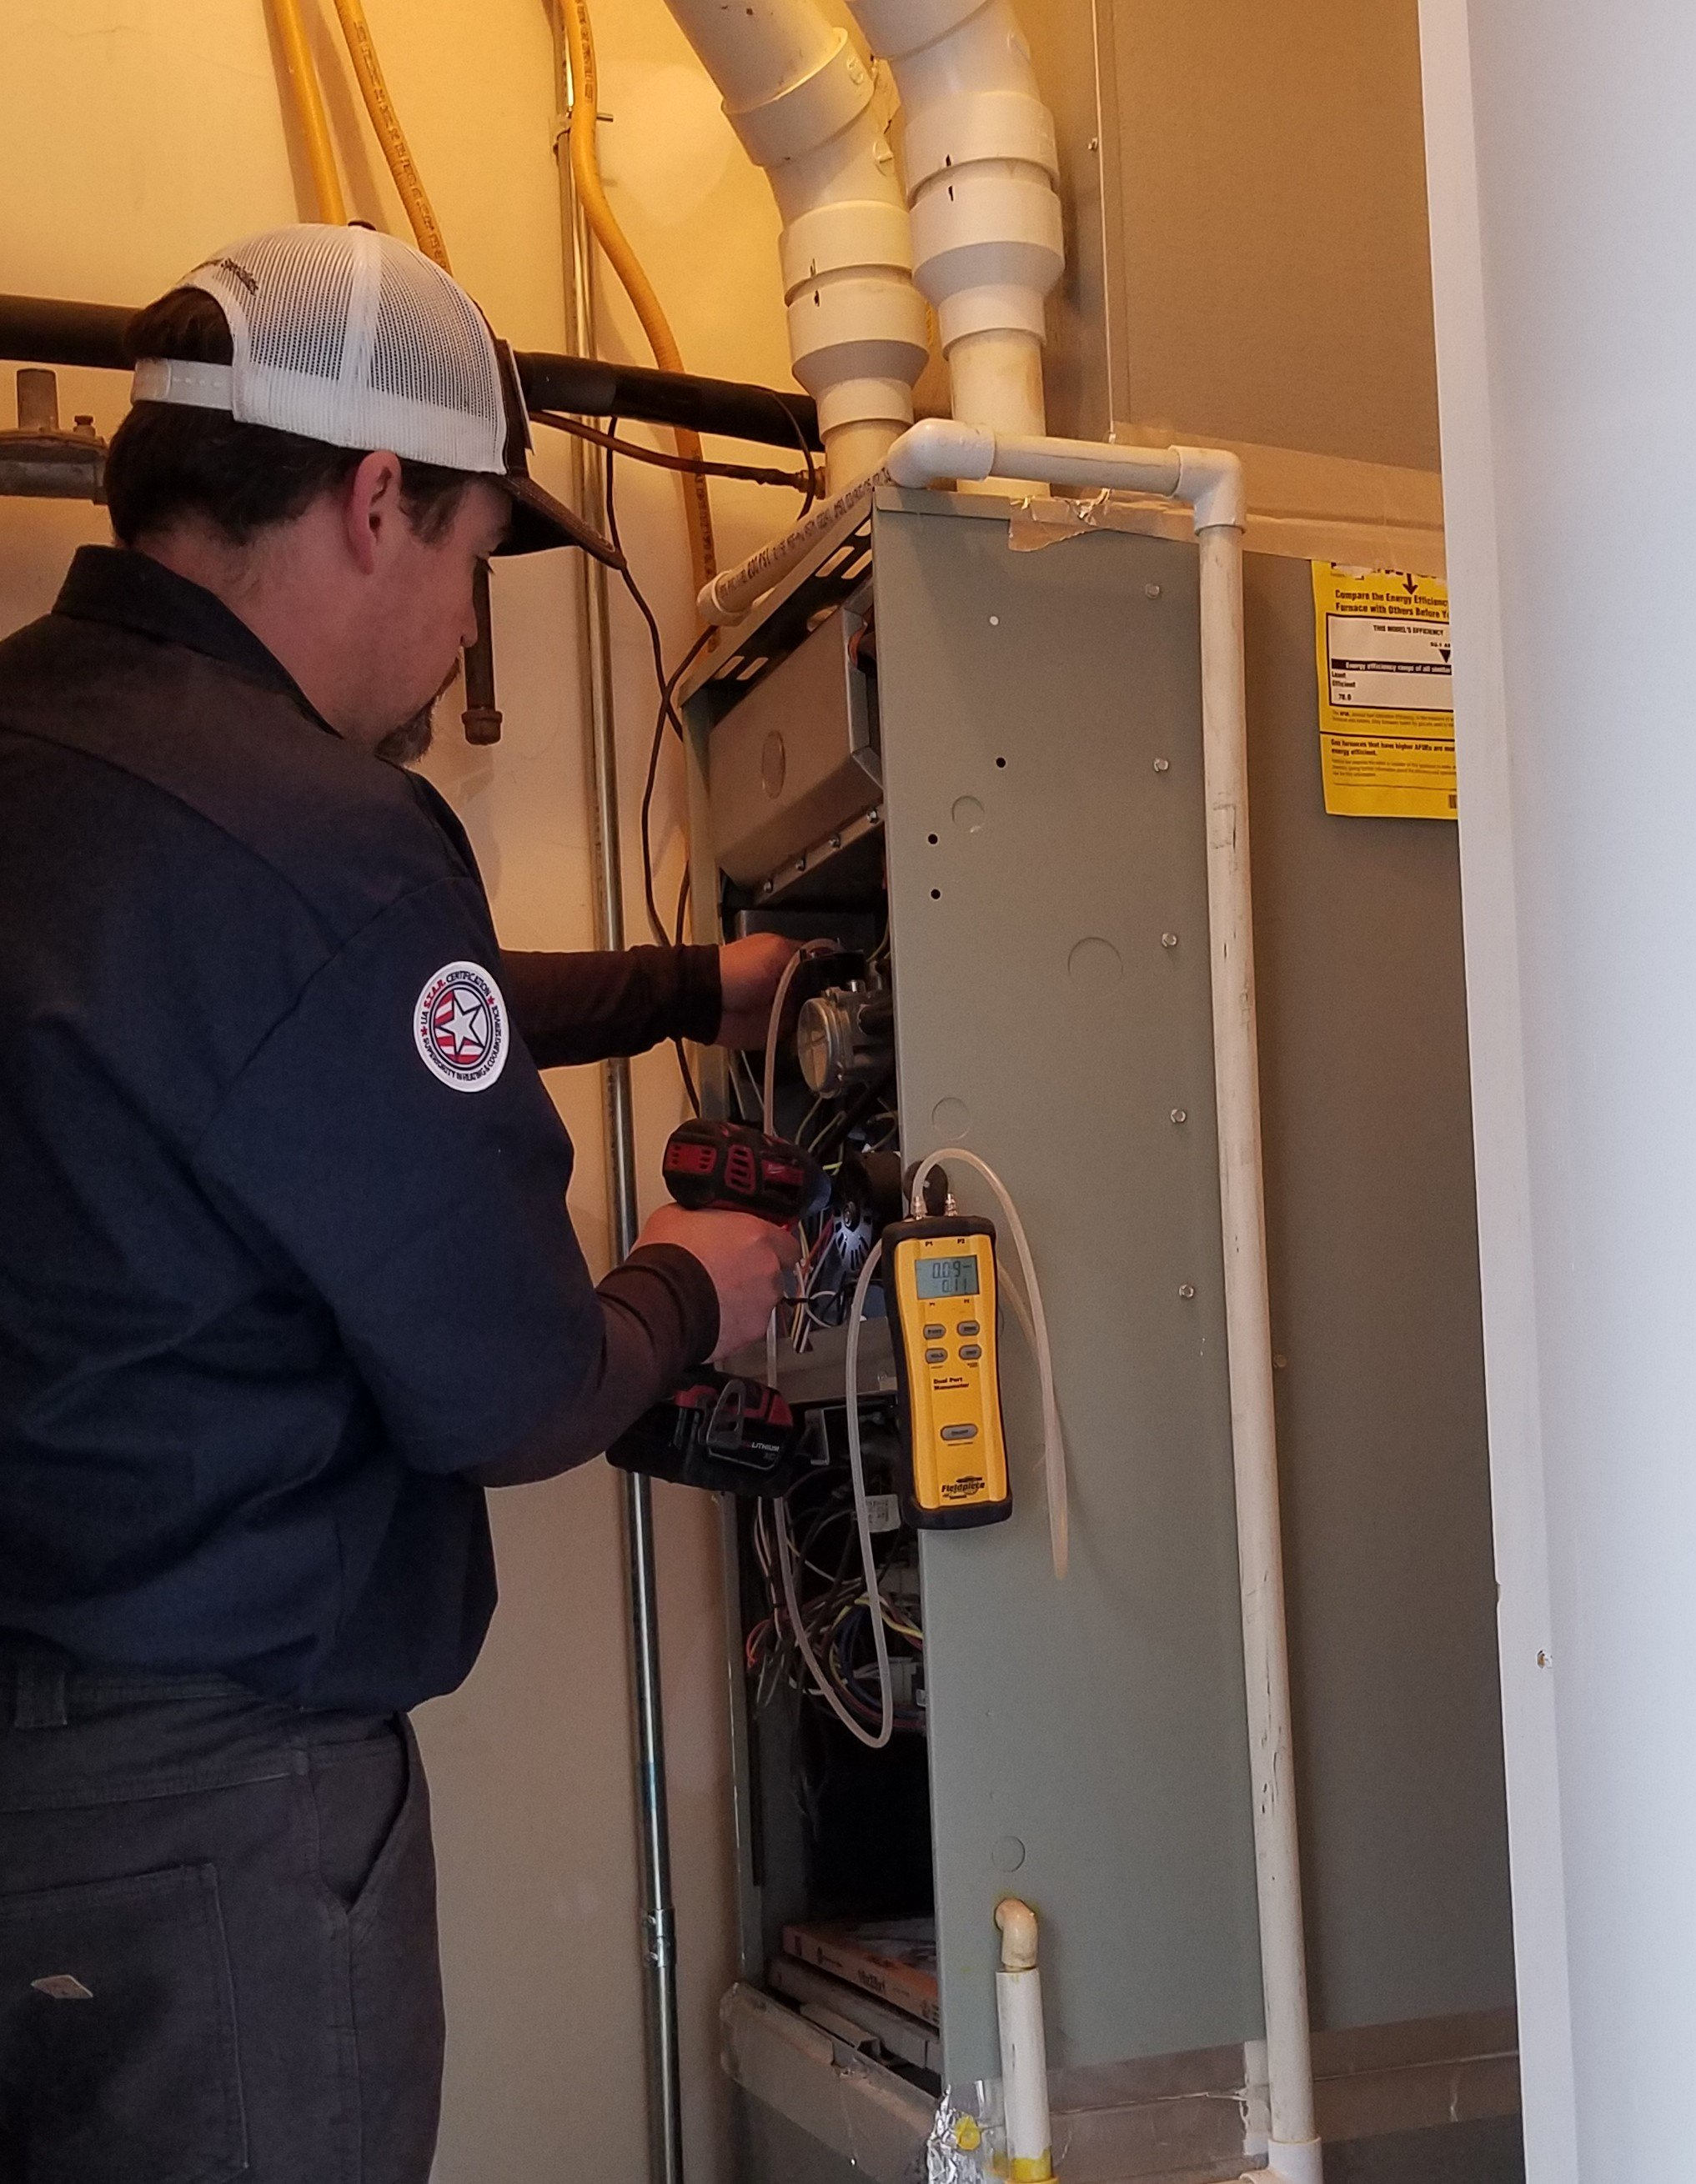 HVAC Technician performing maintenance on a gas furnace